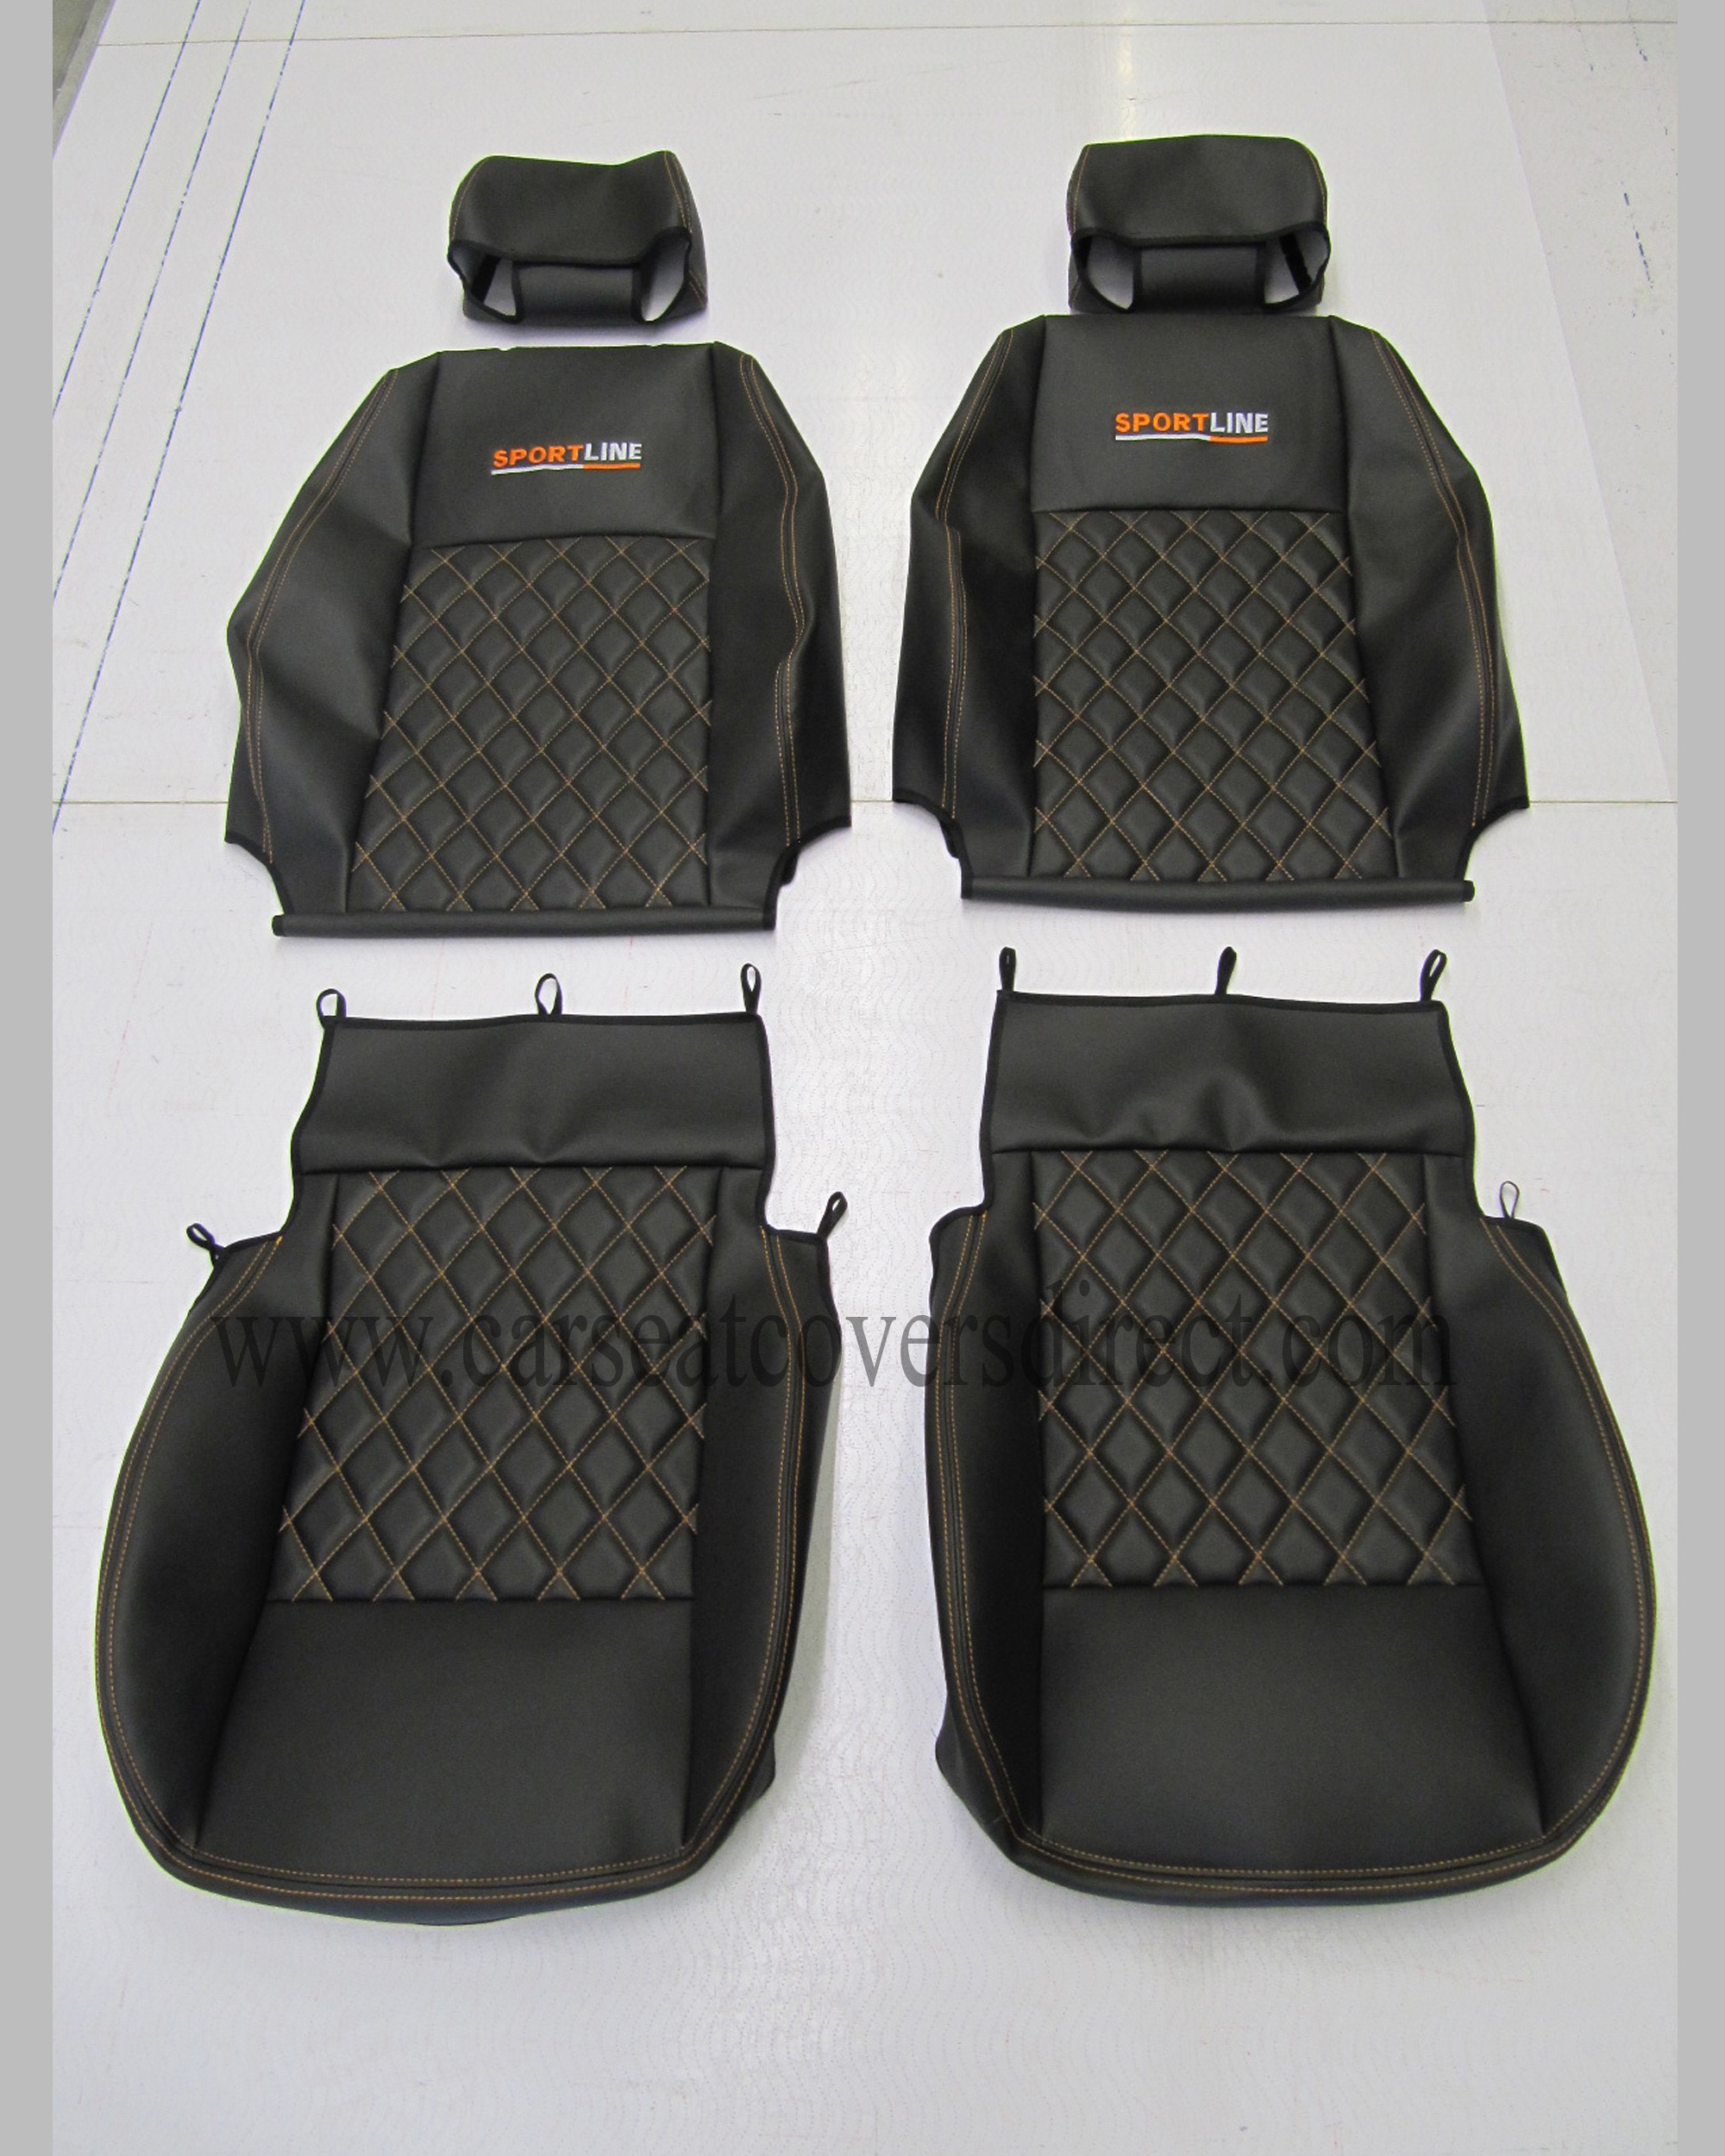 VOLKSWAGEN VW Caddy Black Seat Covers Car Seat Covers